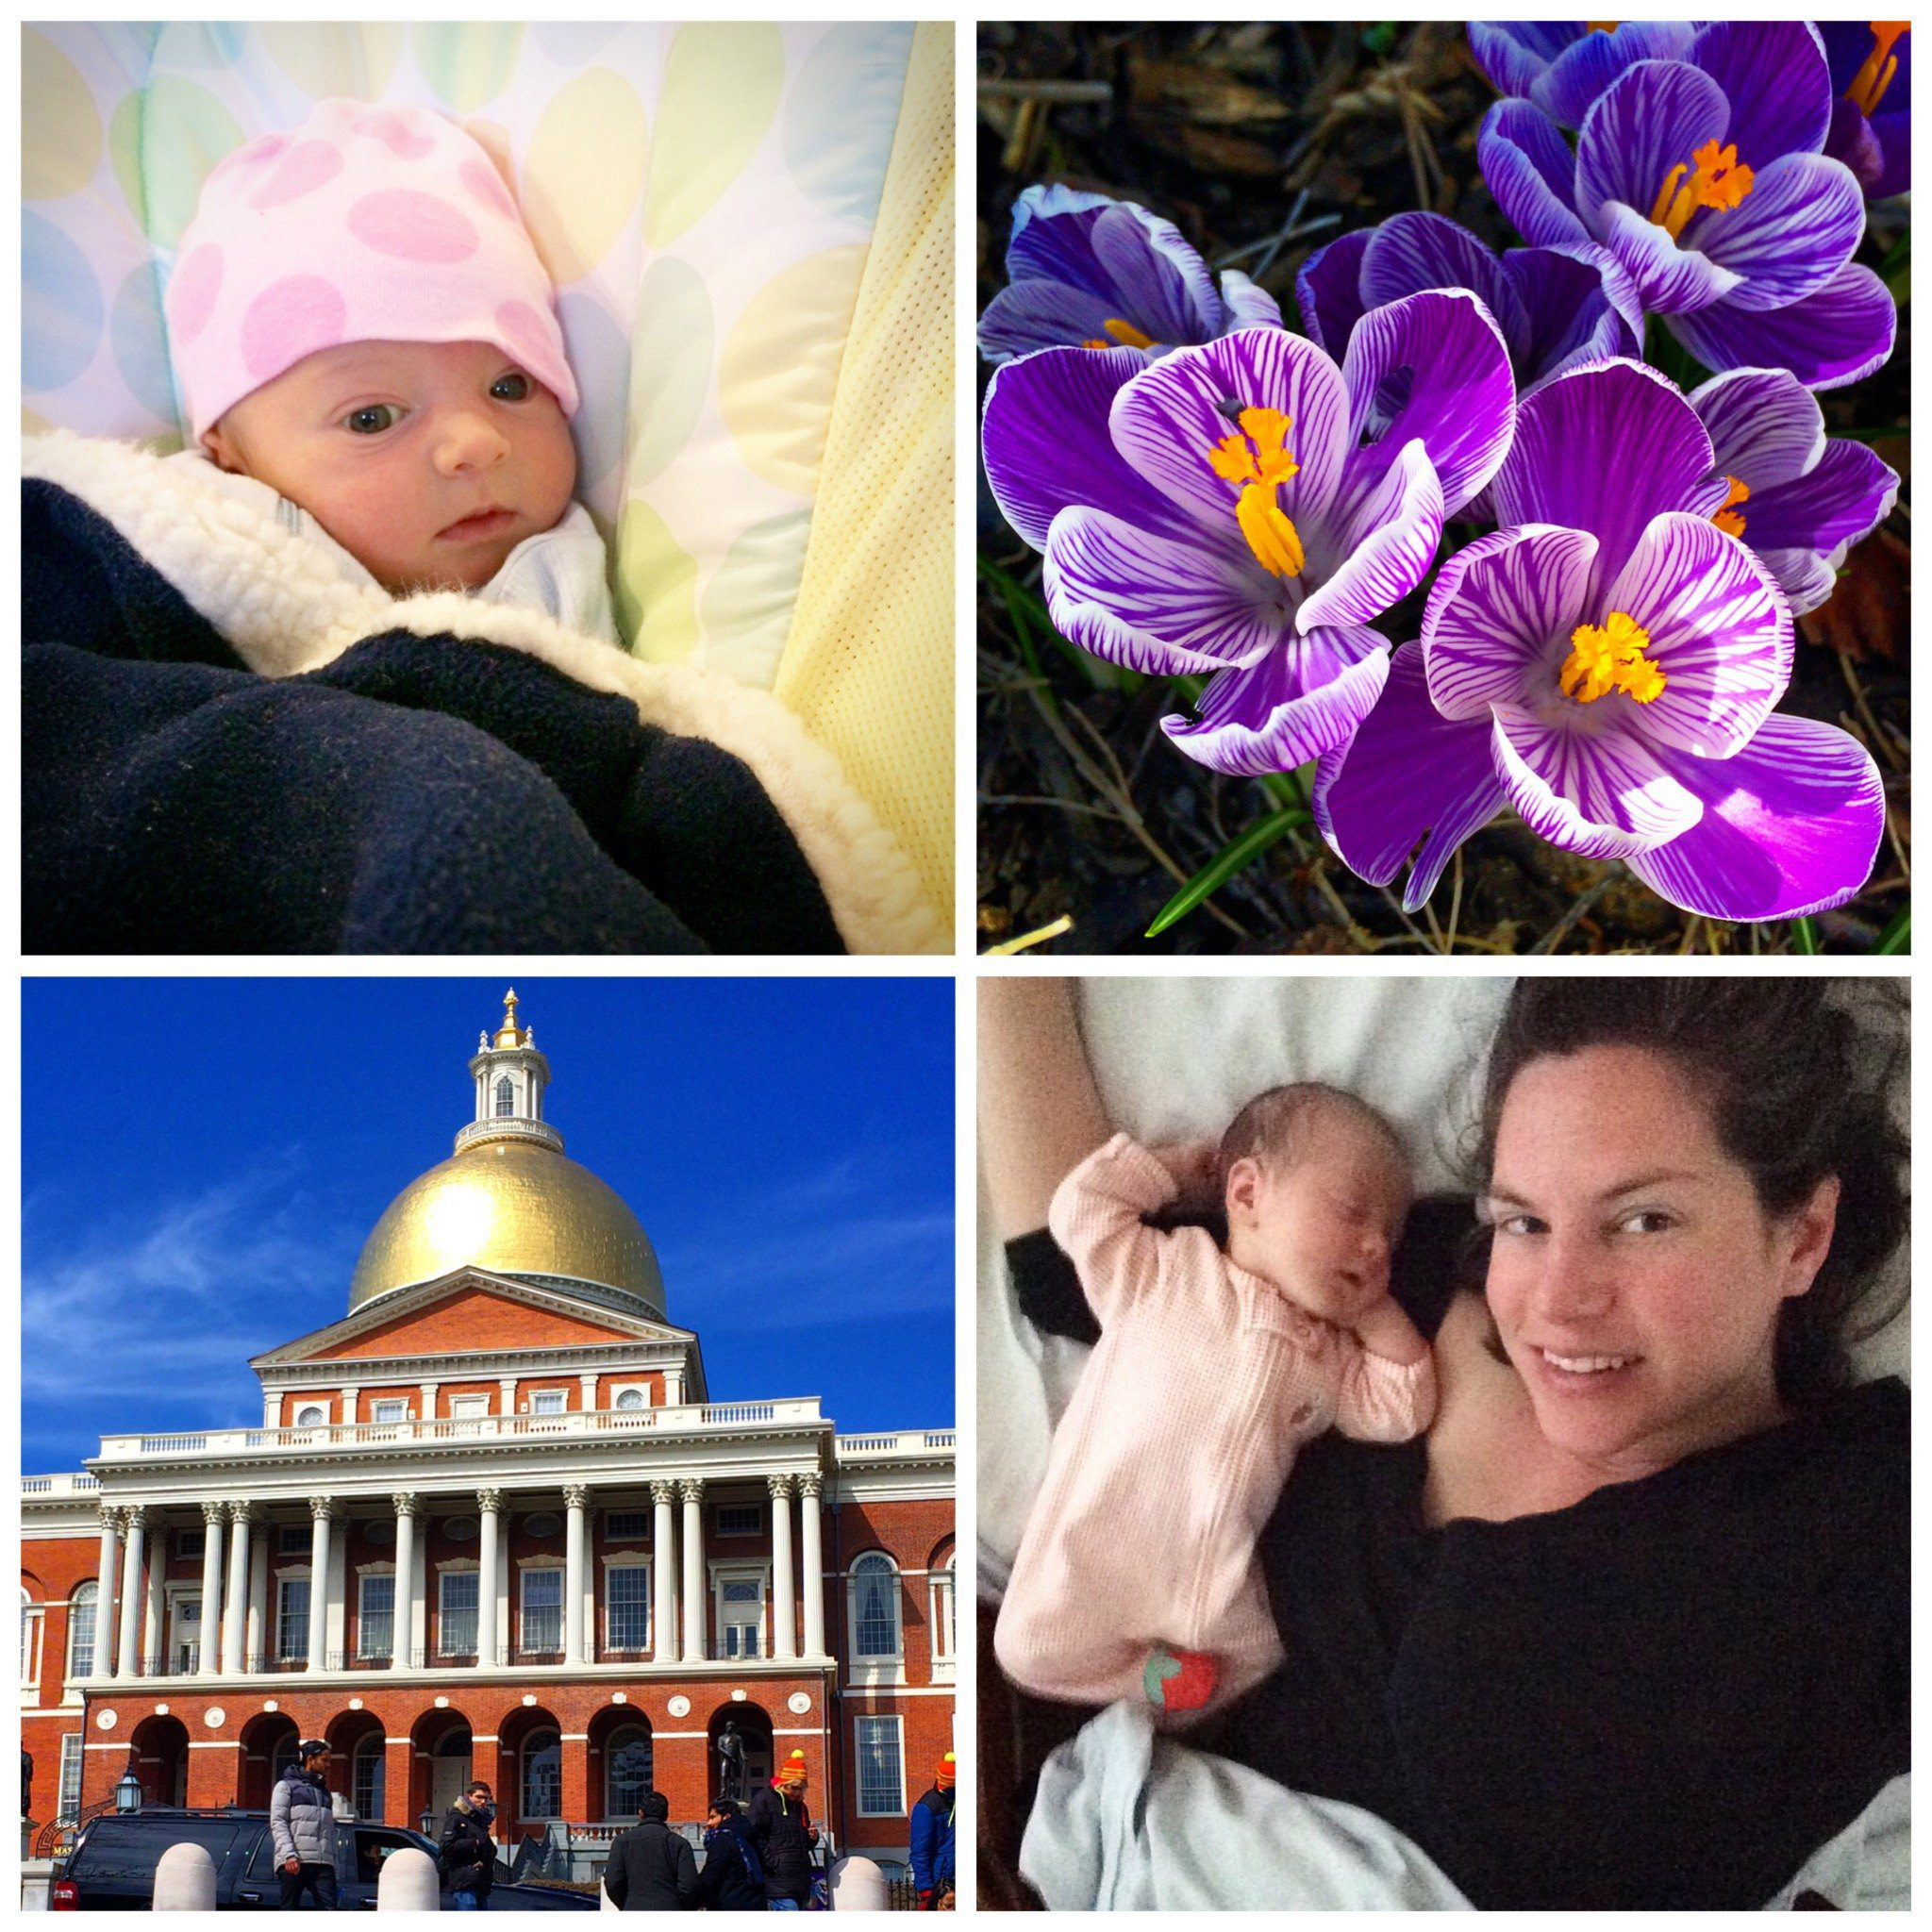 With all that milk, baby is growing like the spring flowers and shining like Boston's golden dome!